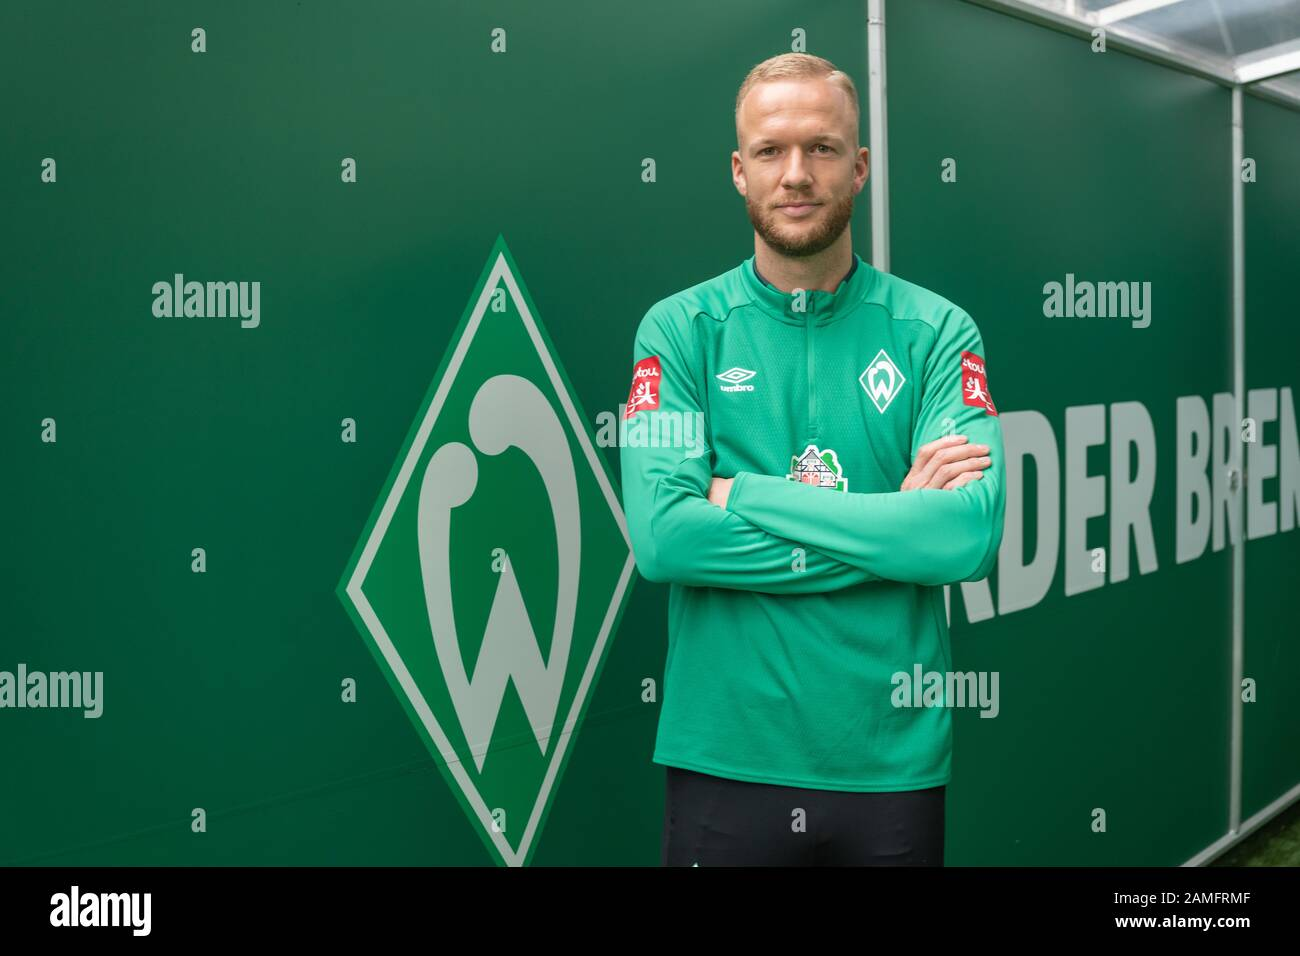 Football Logo Werder Bremen High Resolution Stock Photography And Images Alamy